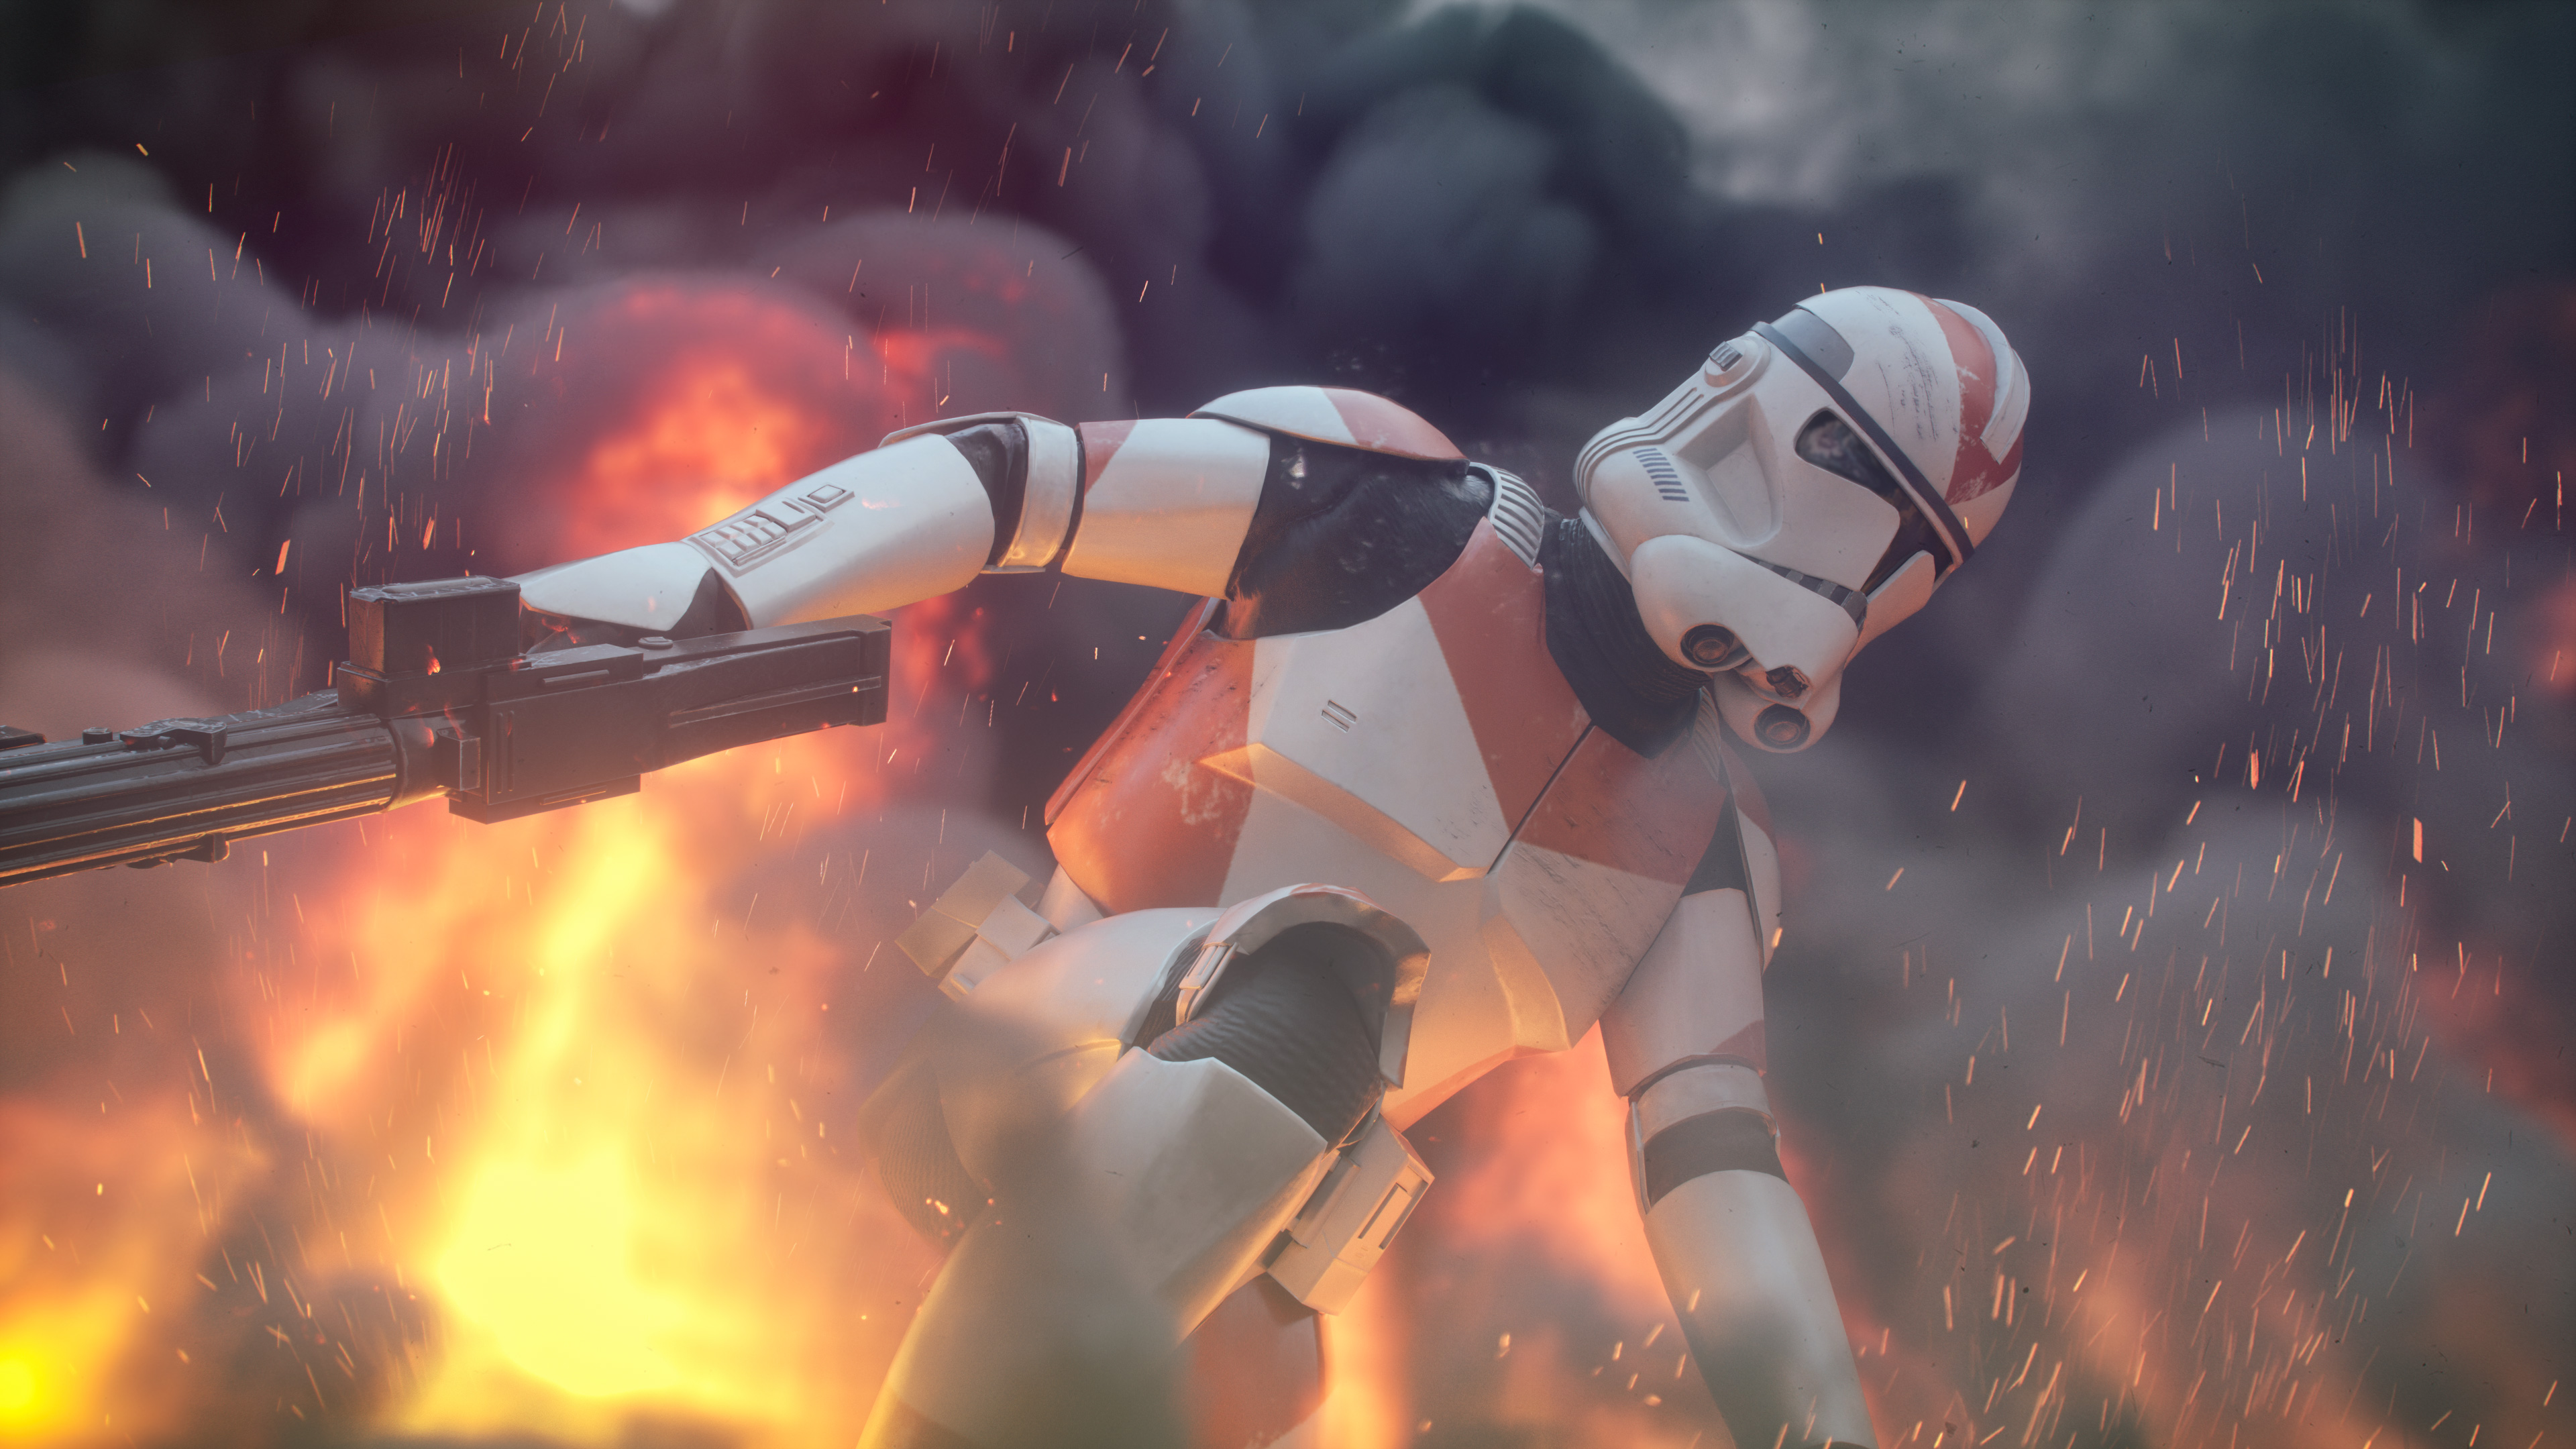 2048x1152 Clone Trooper 212th Battalion 2048x1152 Resolution Hd 4k Wallpapers Images Backgrounds Photos And Pictures